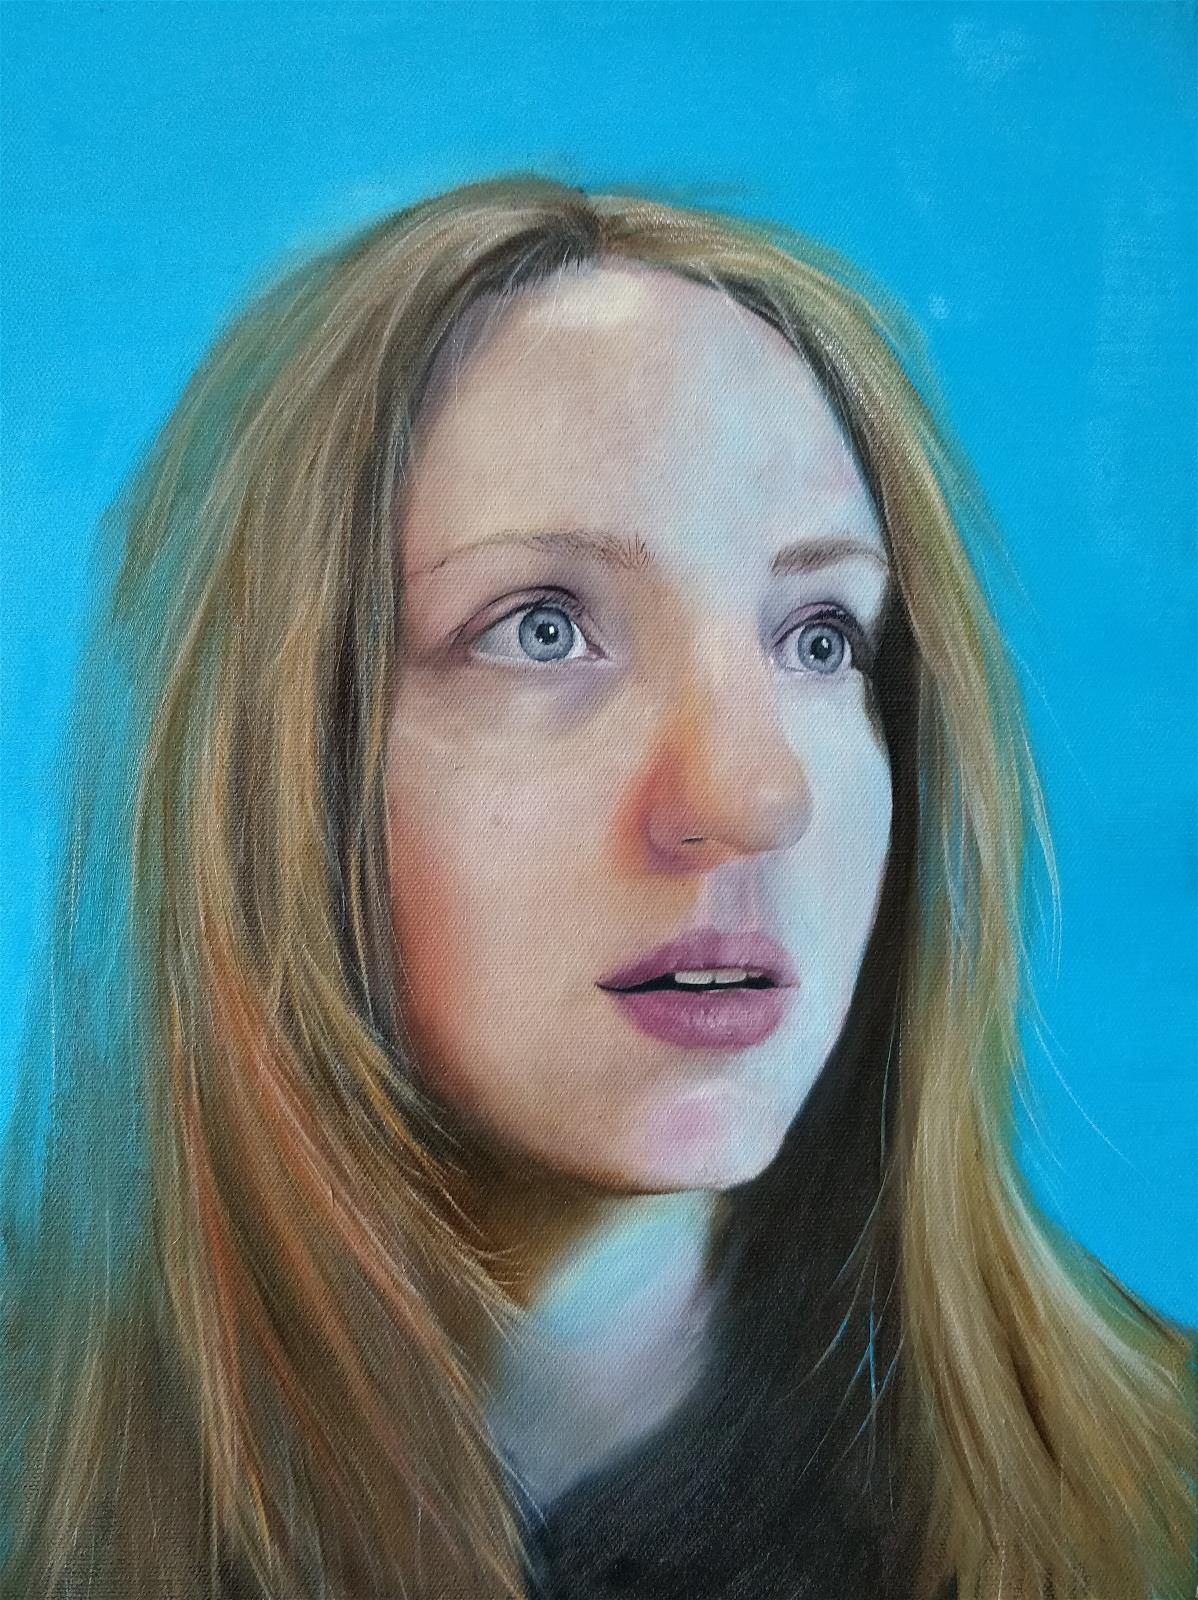 Self portrait with a blue background